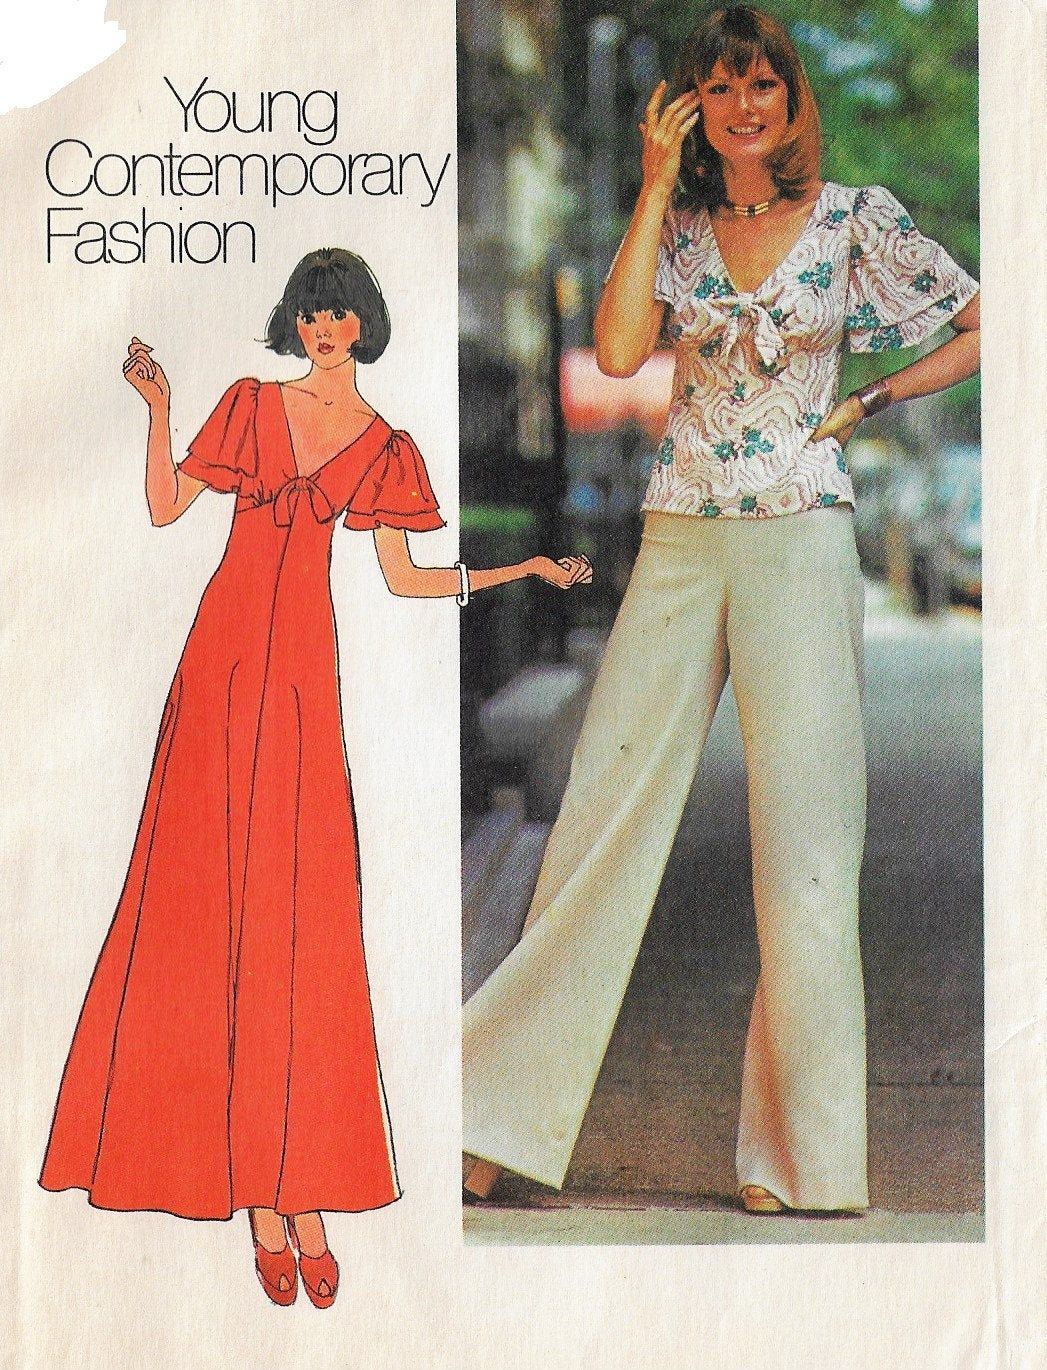 1970s Simplicity Sewing Pattern 7117 Womens Hippie Maxi Dress Etsy Hippie Maxi Dress Young Contemporary Fashion Simplicity Sewing Patterns [ 1370 x 1047 Pixel ]